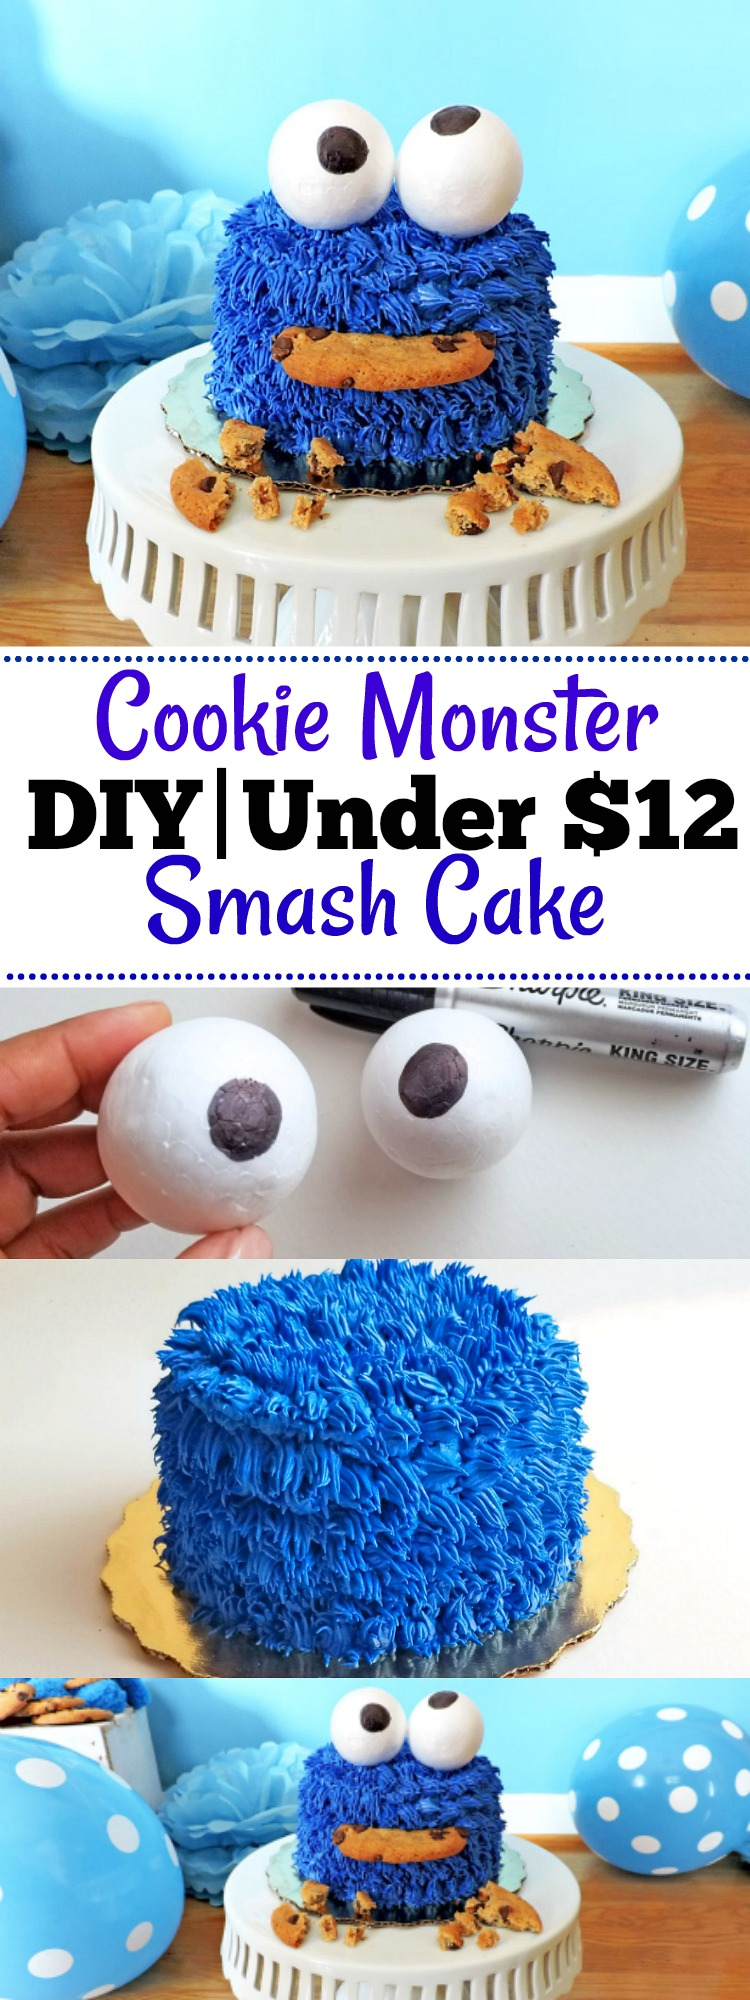 DIY Cookie Monster Smash Cake Beautiful Eats Things